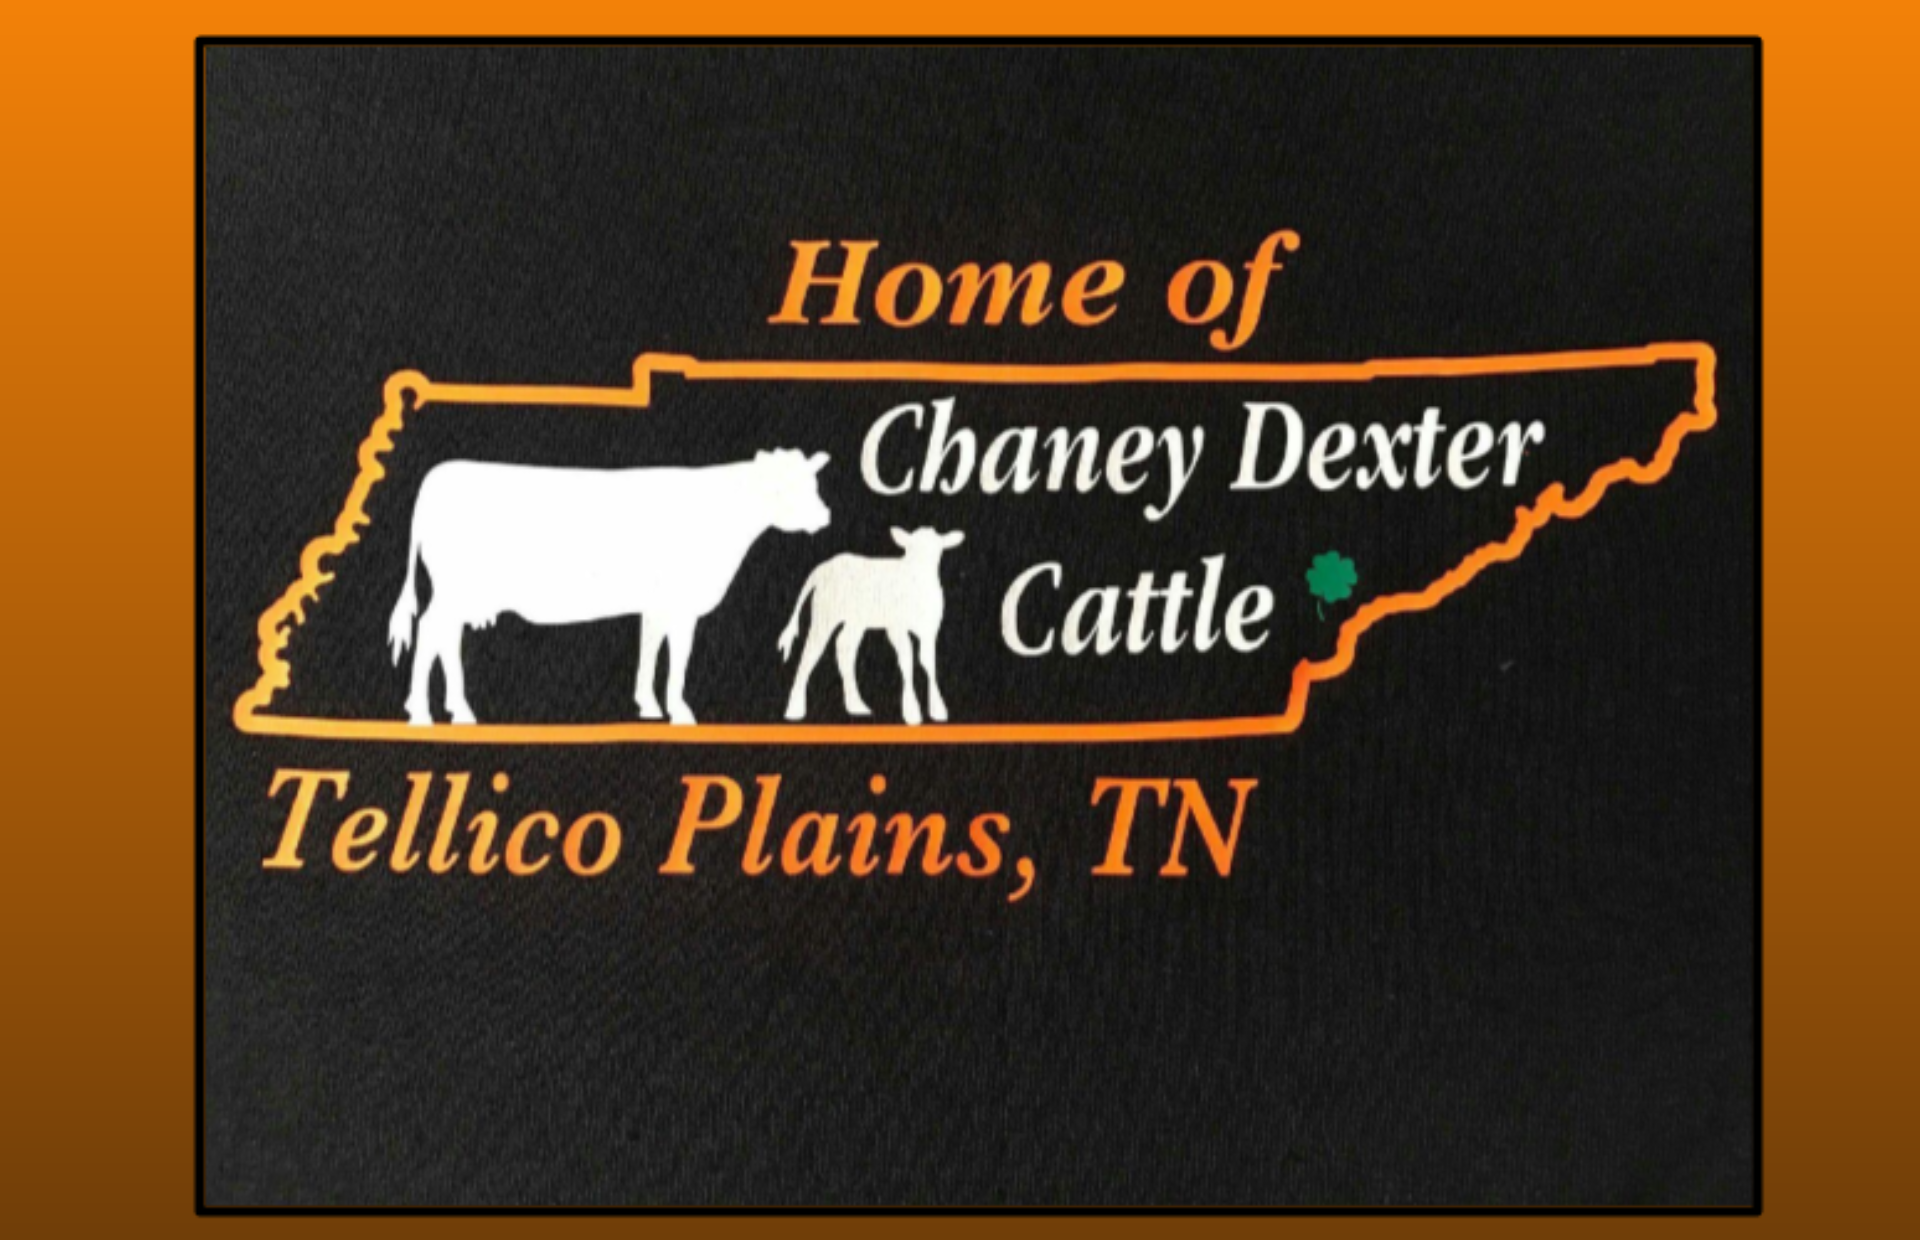 Chaney Registered Dexter Cattle